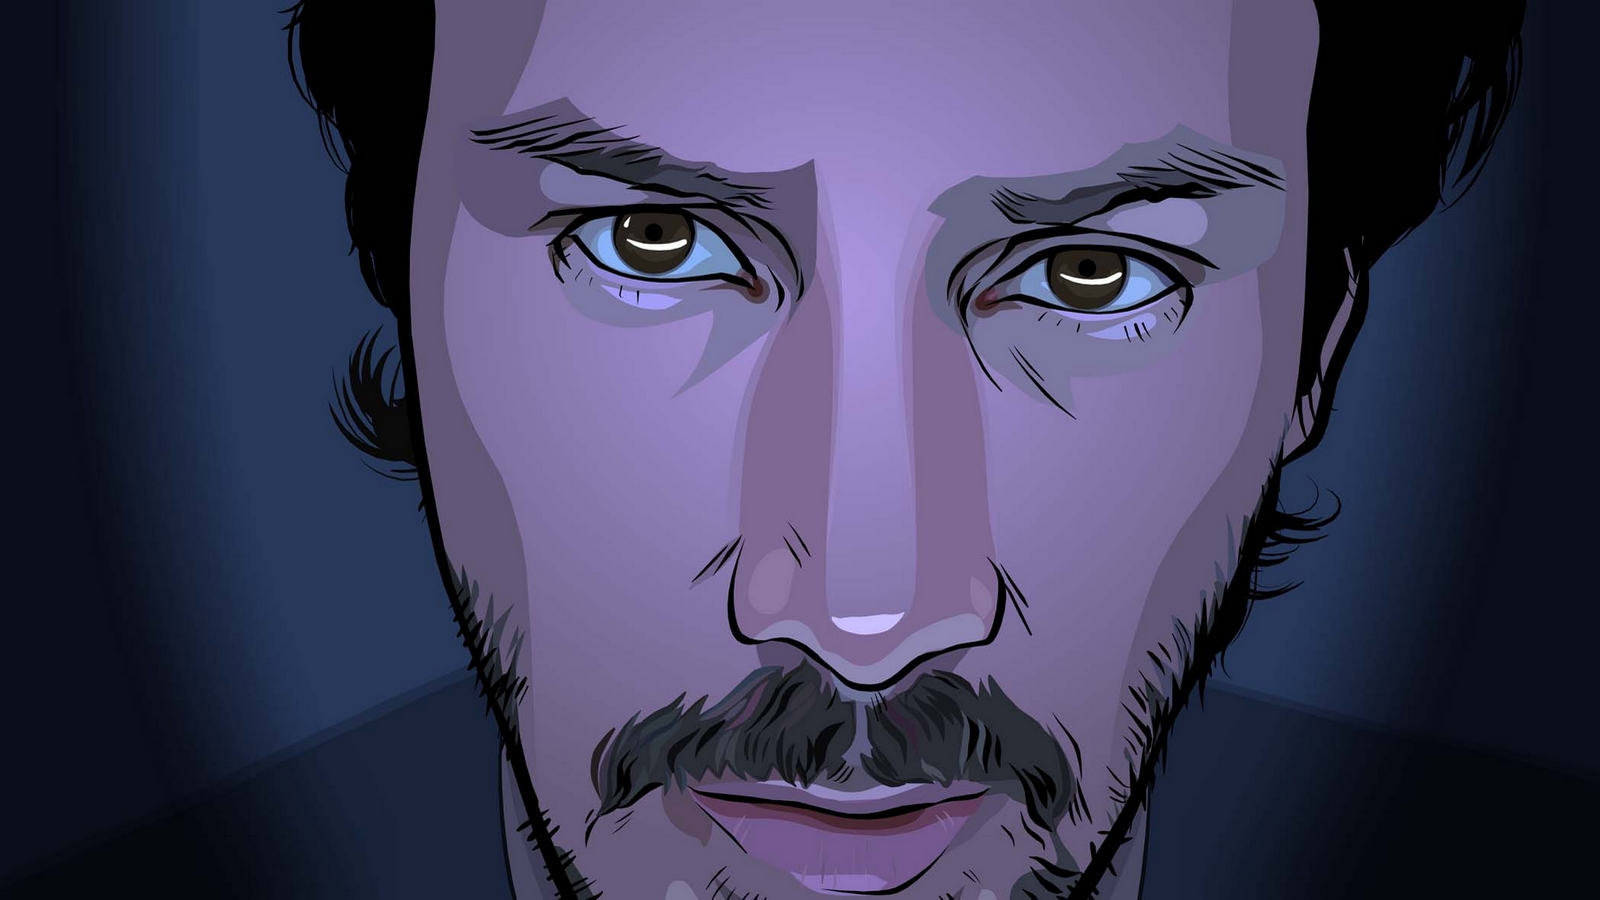 http://4.bp.blogspot.com/-V1XTlfmkA38/UD6Ioj71vLI/AAAAAAAAO5M/xHEgfGMmdXY/s1600/Keanu_Reeves_A_scanner_darkly_movie_Wallpaper.jpg